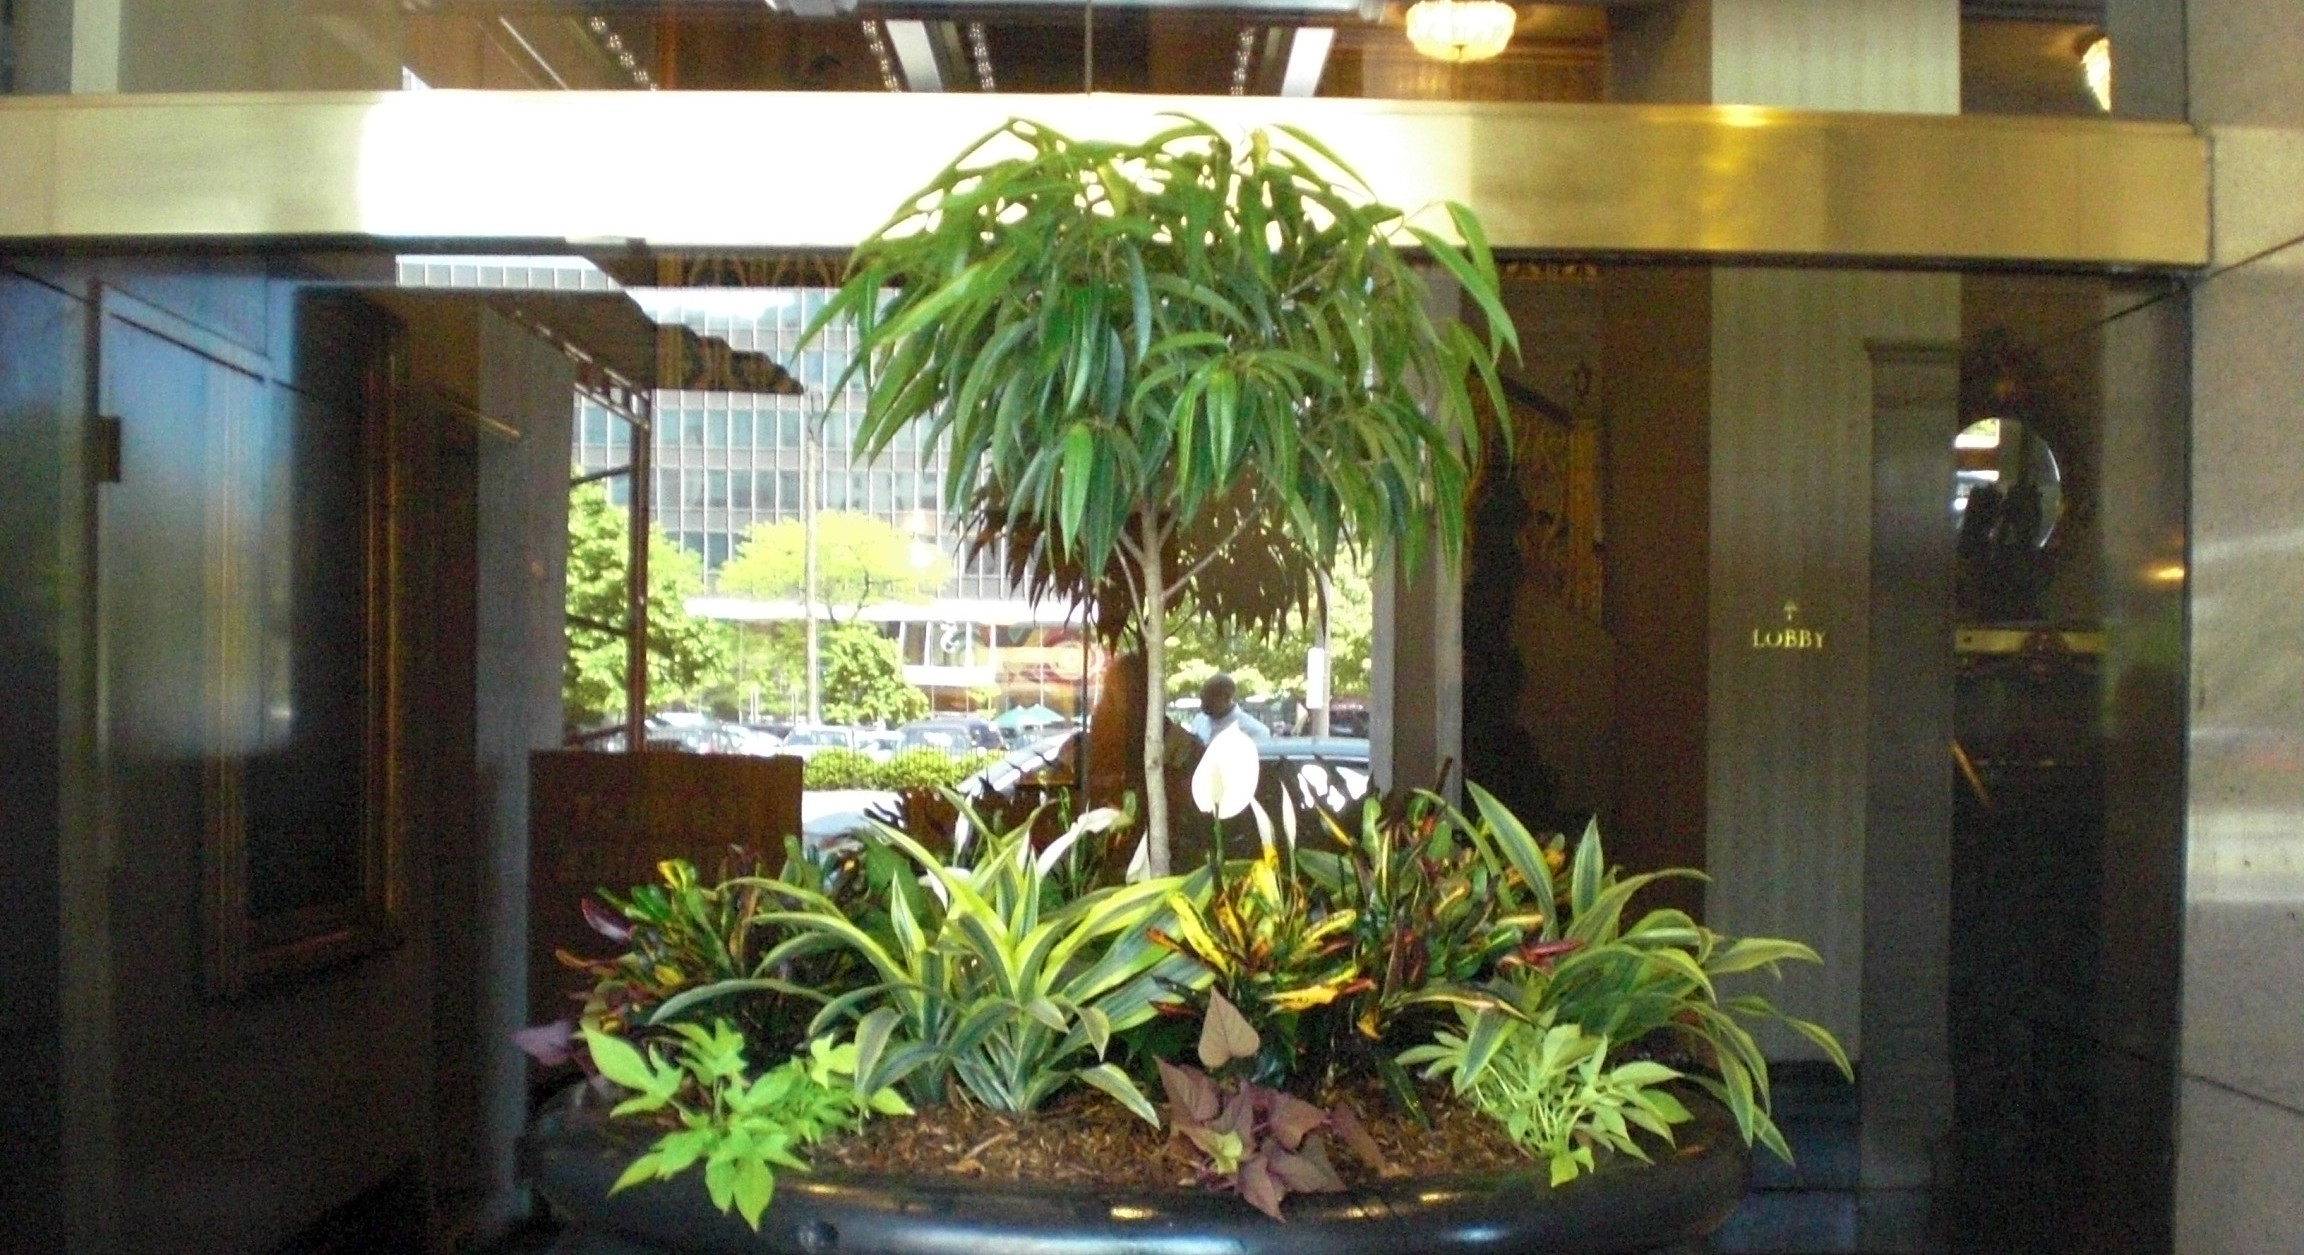 Interior Plant Care Maintenance | Commercial Floral Display Service